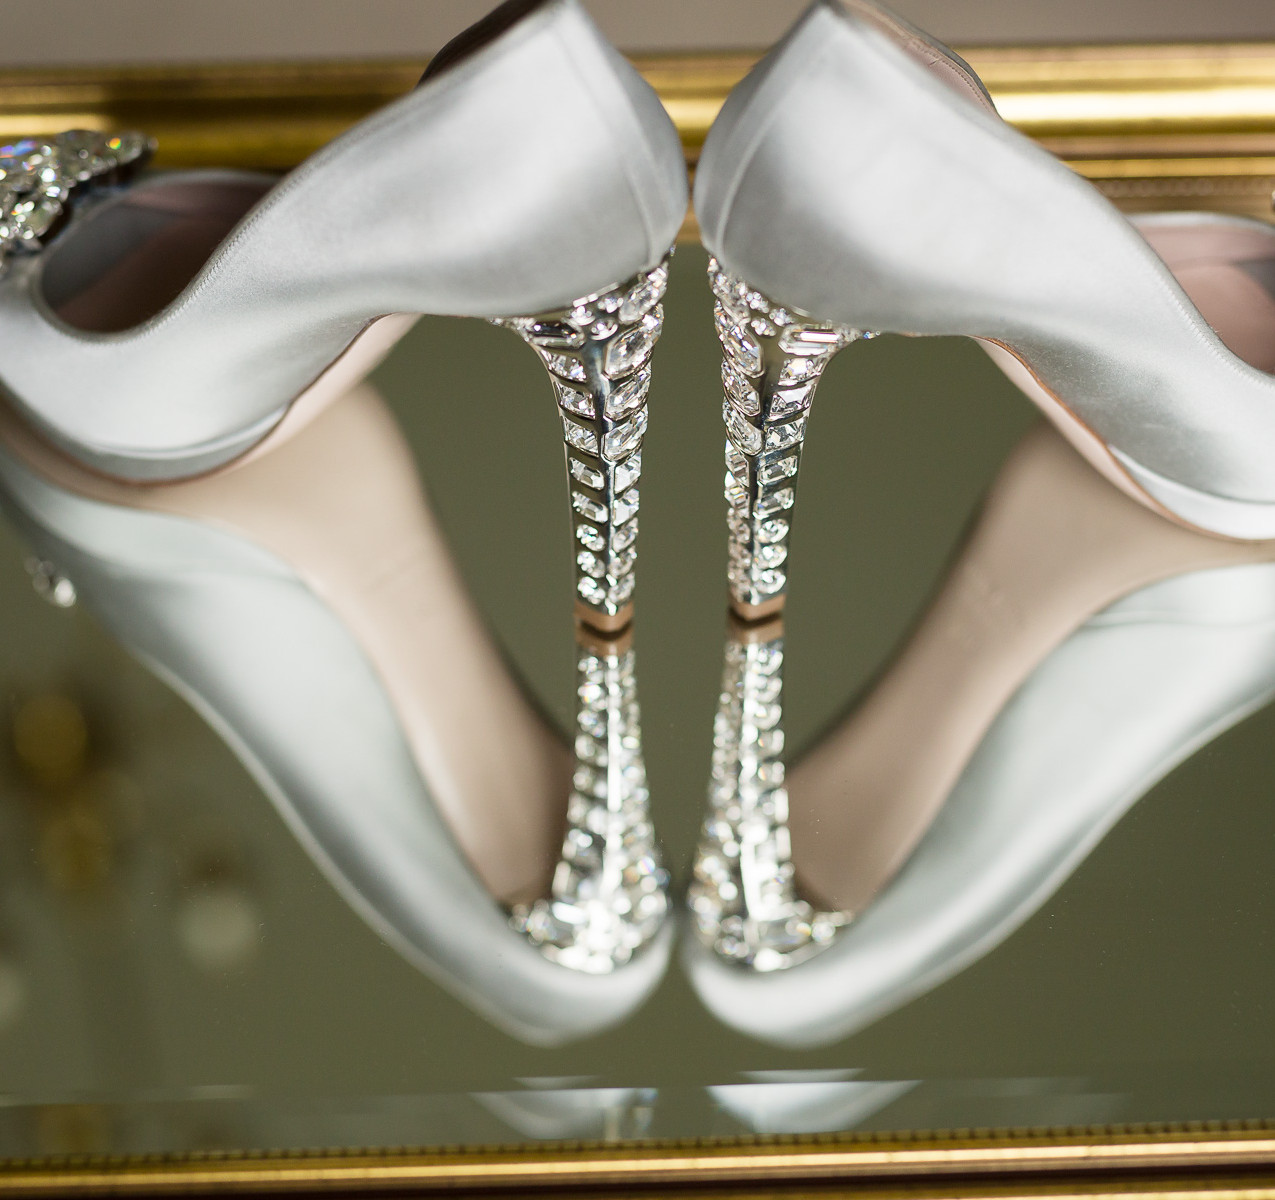 Silver Jimmy Choo wedding shoes standing on a glass tabletop